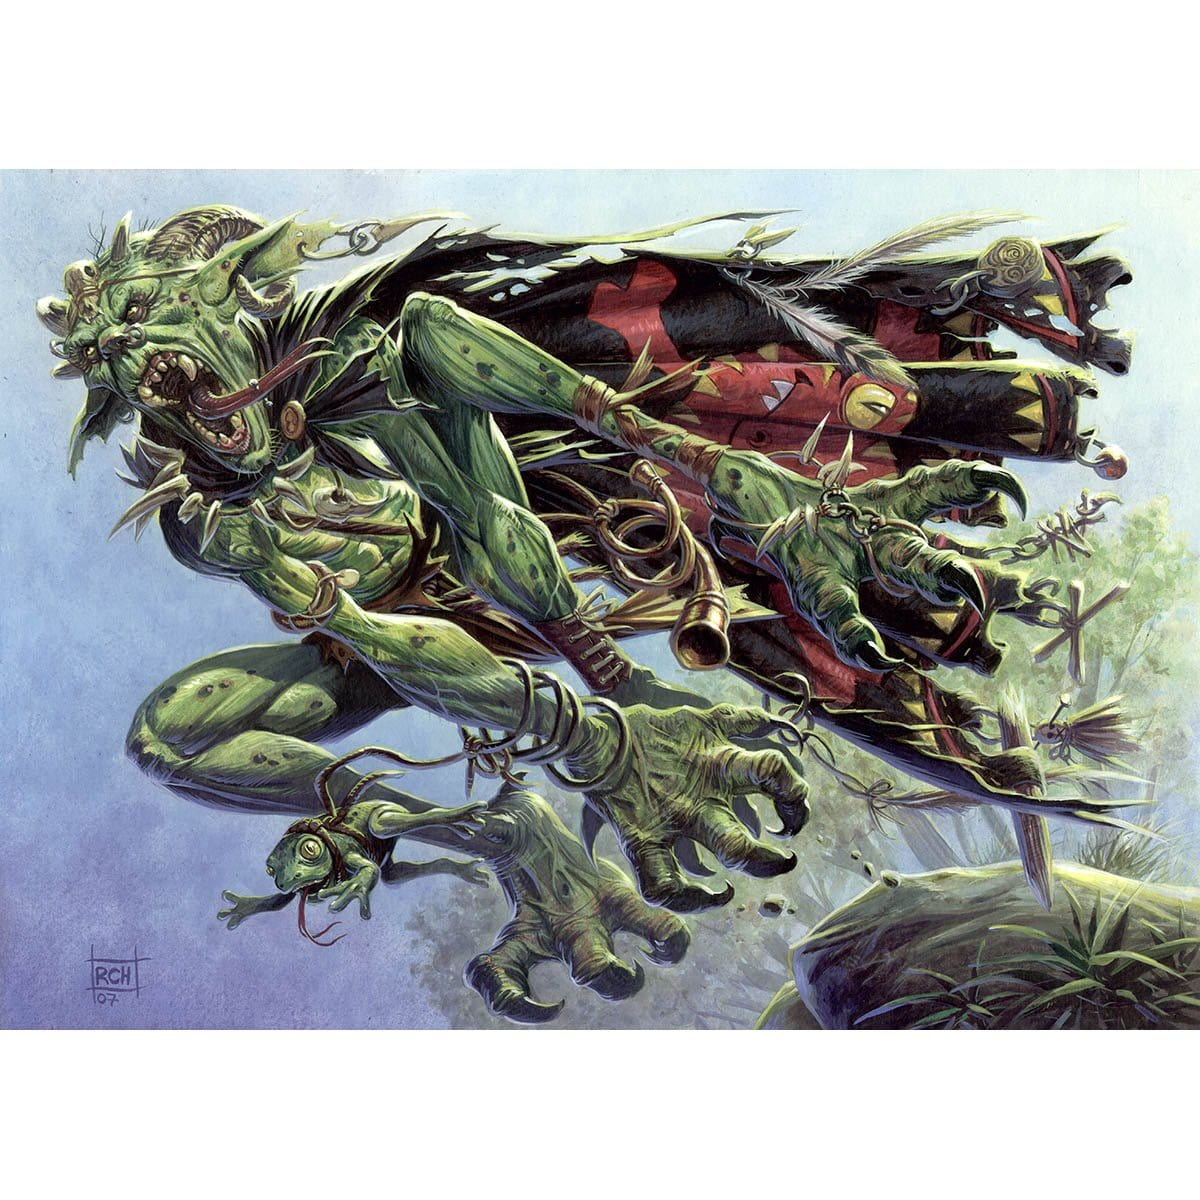 Frogtosser Banneret Print - Print - Original Magic Art - Accessories for Magic the Gathering and other card games